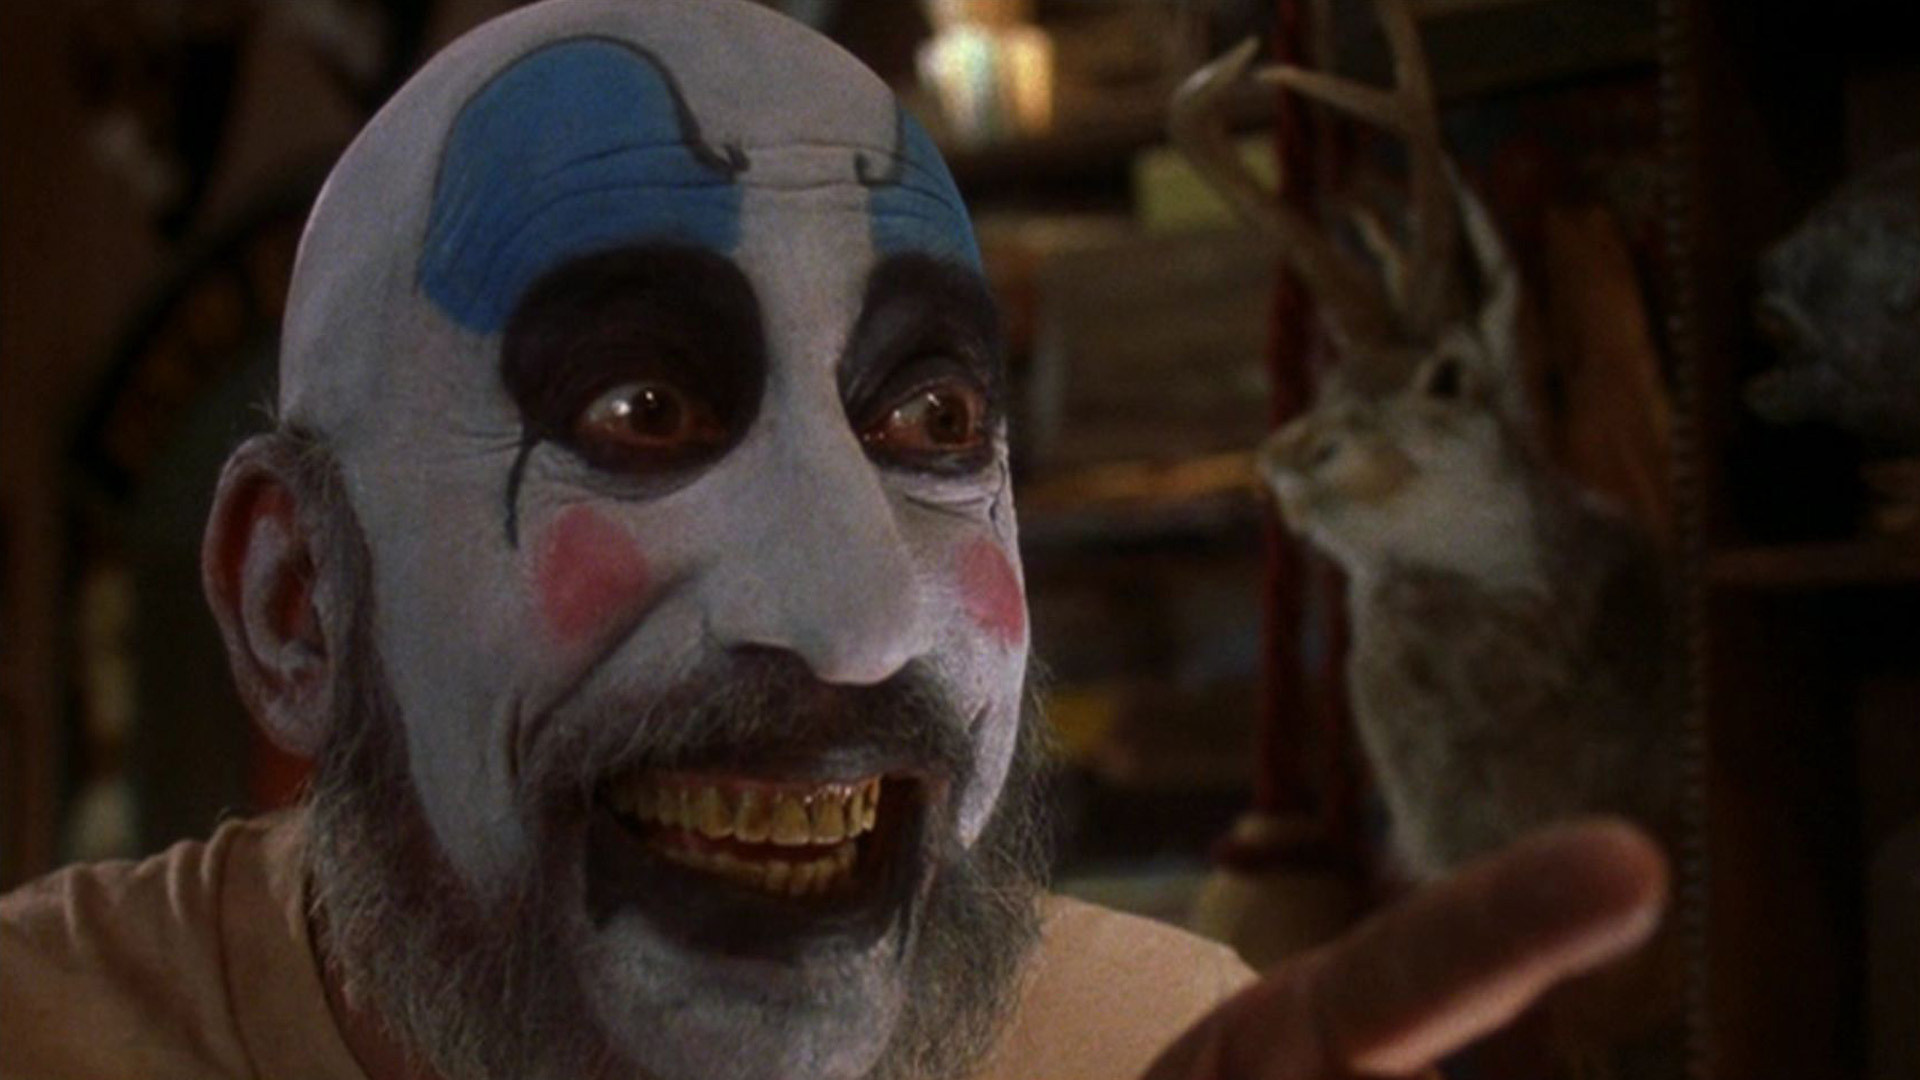 House Of 1000 Corpses Dark Horror Clown R Wallpaper 1920x1080